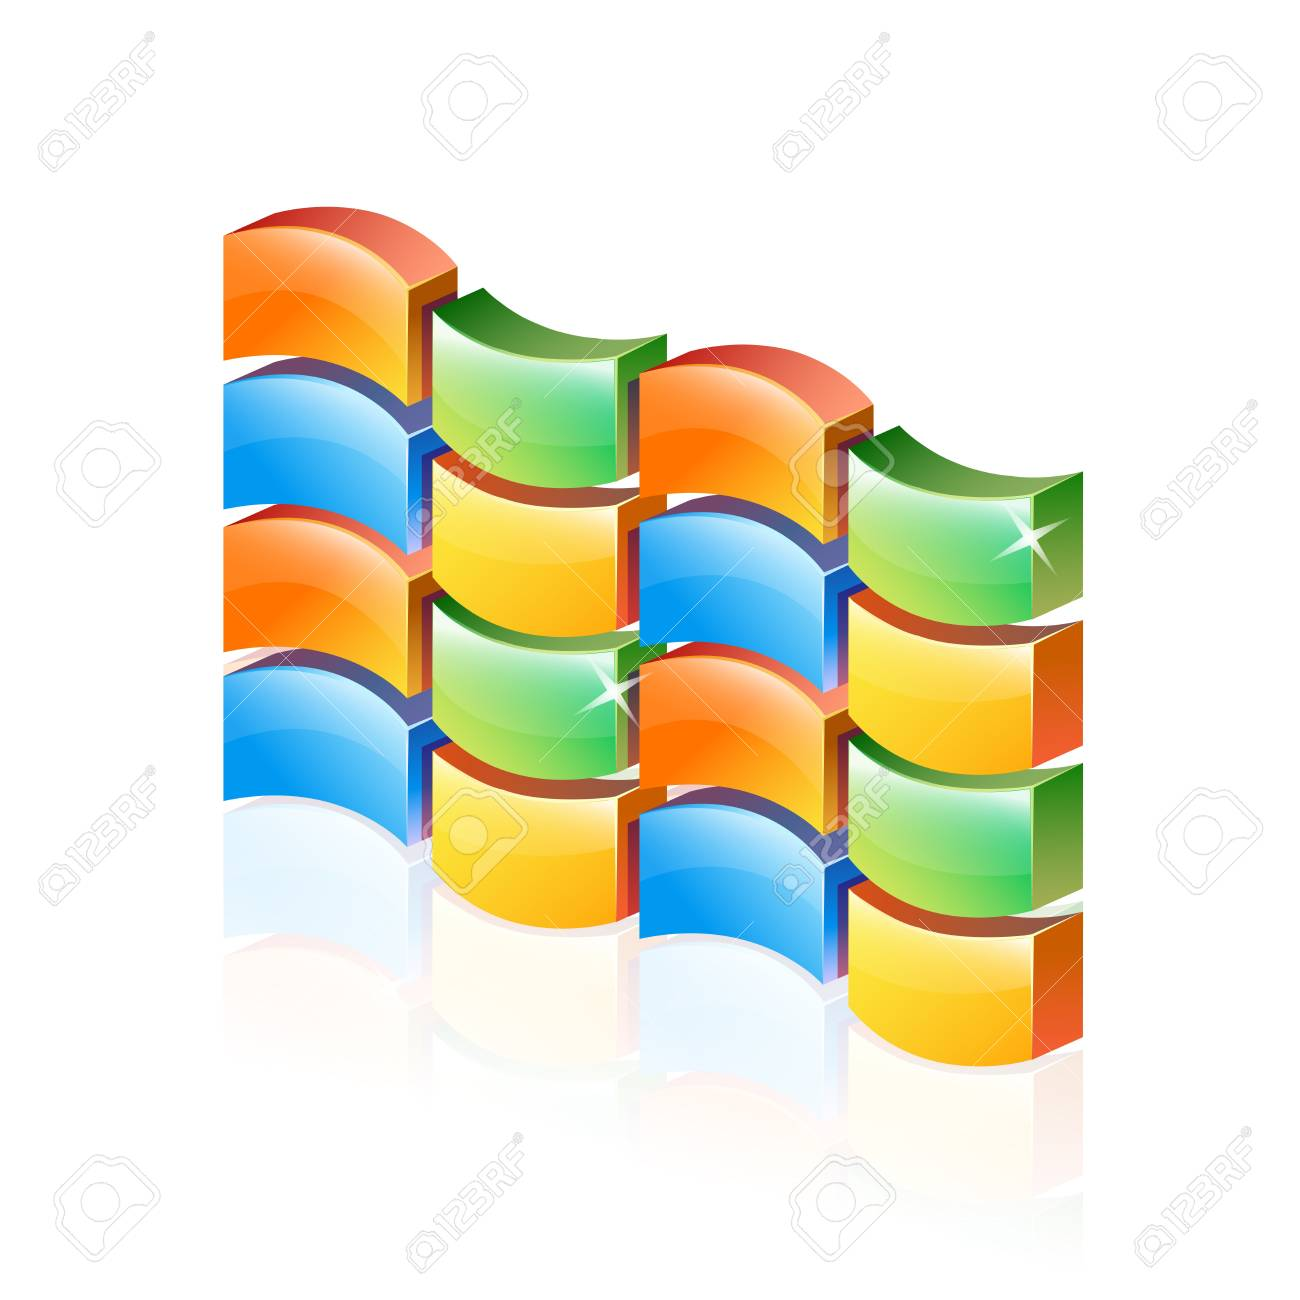 Abstract 3d Colorful firewall Stock Vector - 16940135